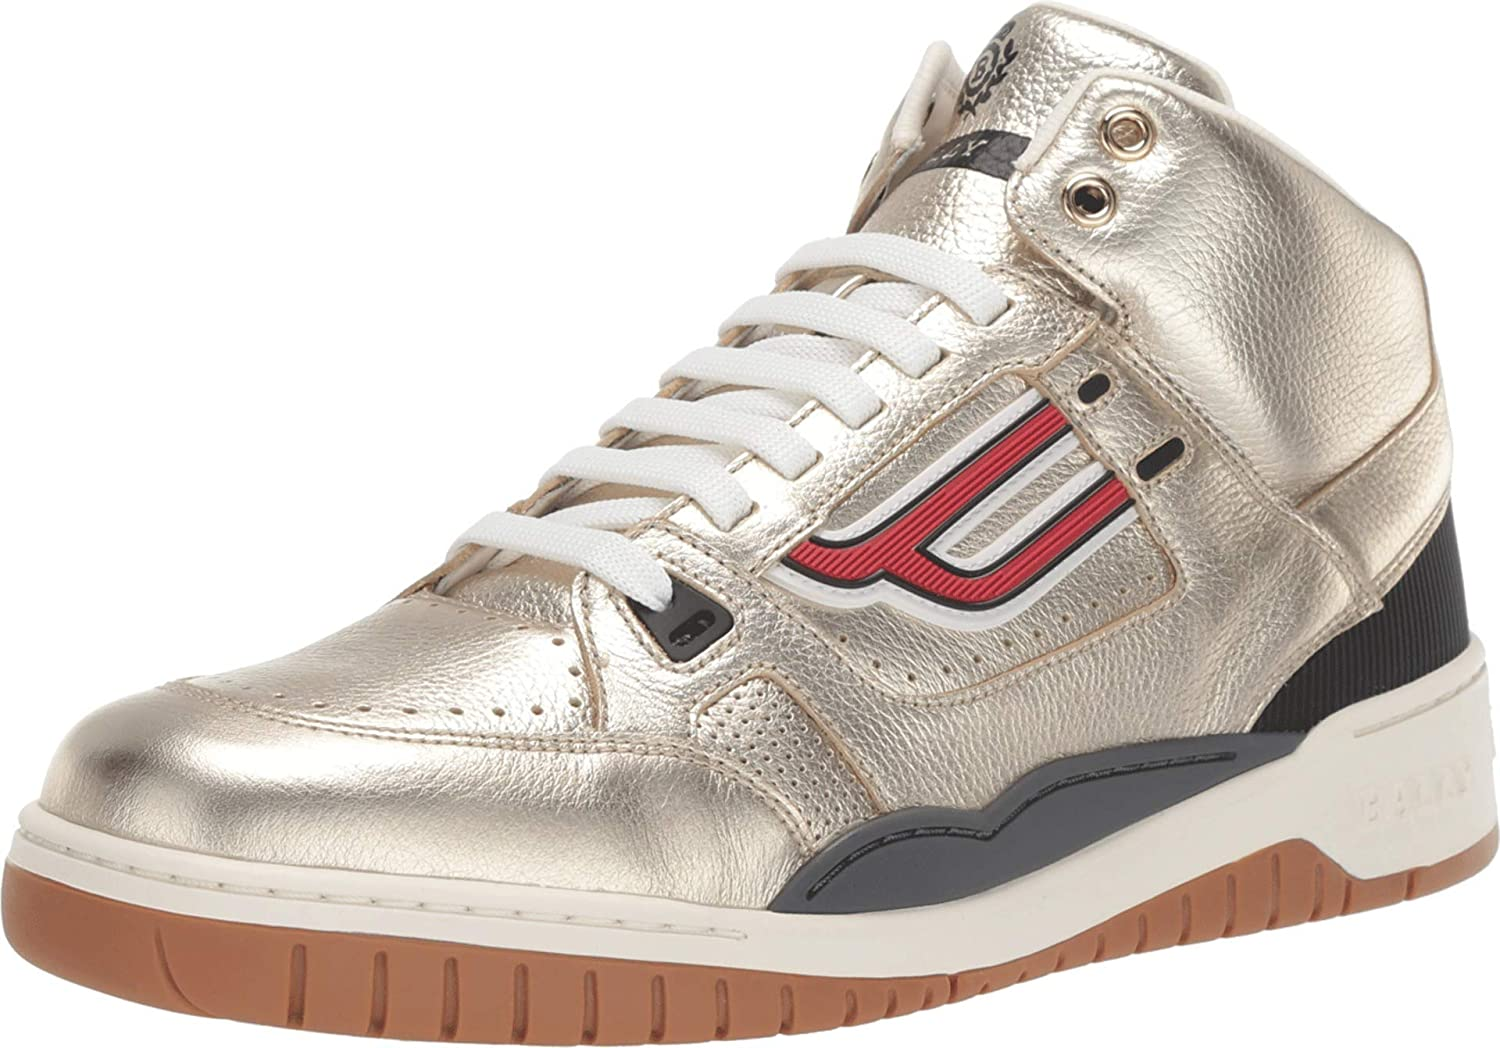 móvil Error esculpir  Buy BALLY King Sneaker Gold 8 UK (US Men's 9) at Amazon.in